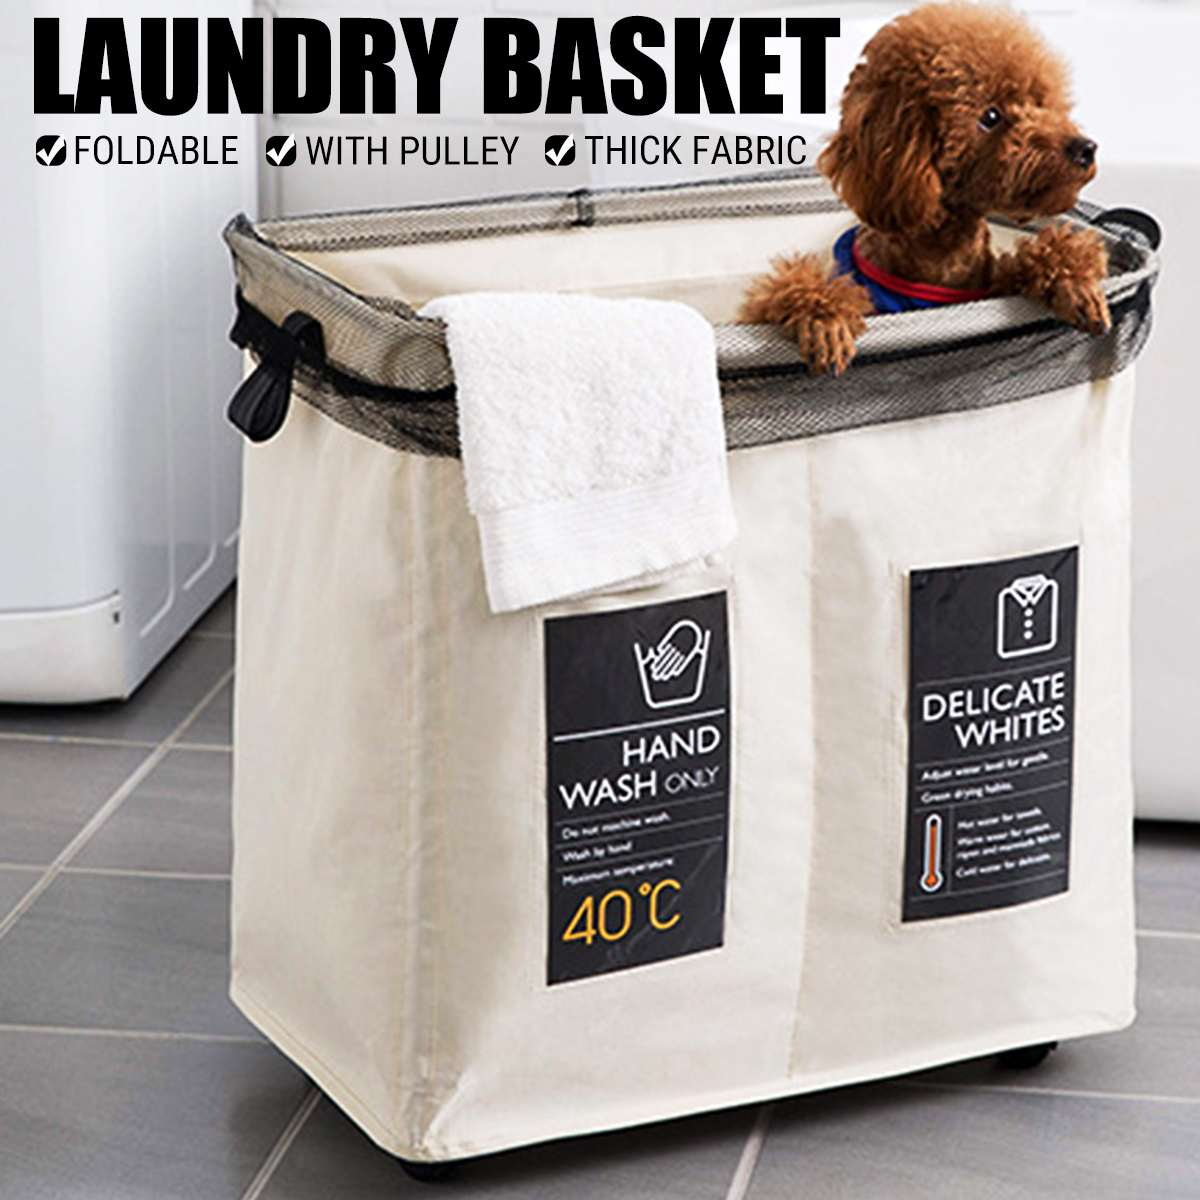 Waterproof Laundry Basket With Pulley Laundry Hamper Foldable Dirty Cloth Basket Bathroom Storage 2 Grid For Home